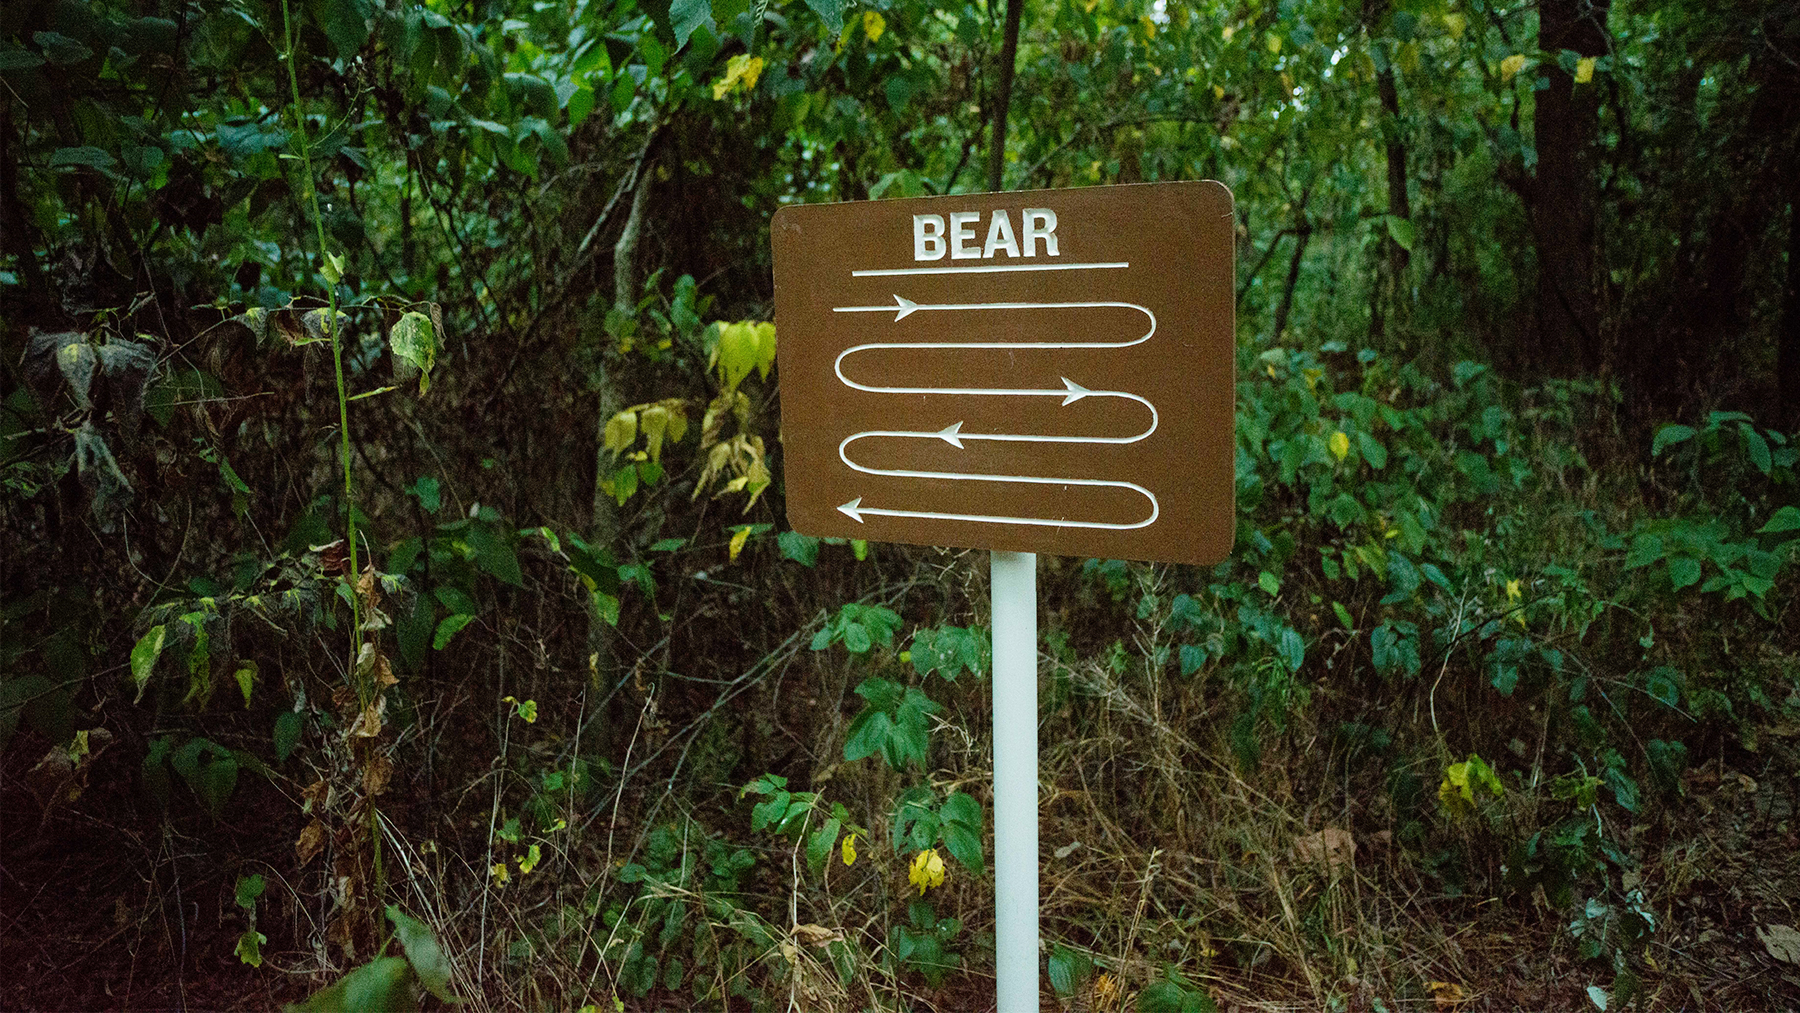 sign indicating the presence of bears. Photo by Valerie Oliveiro